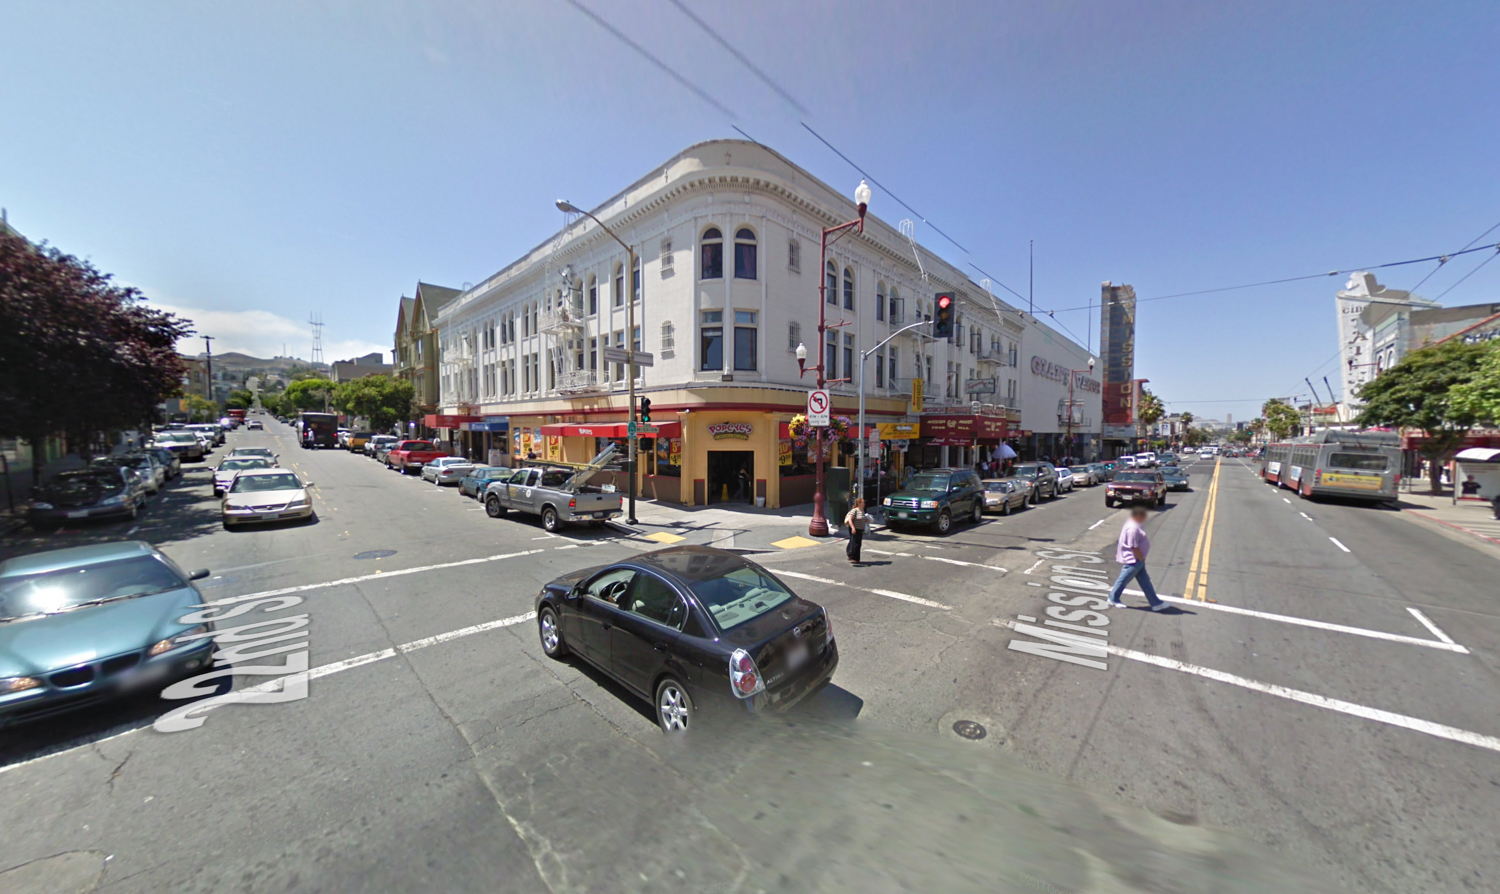 2588 Mission Street previous structure demolished, image via Google Street View